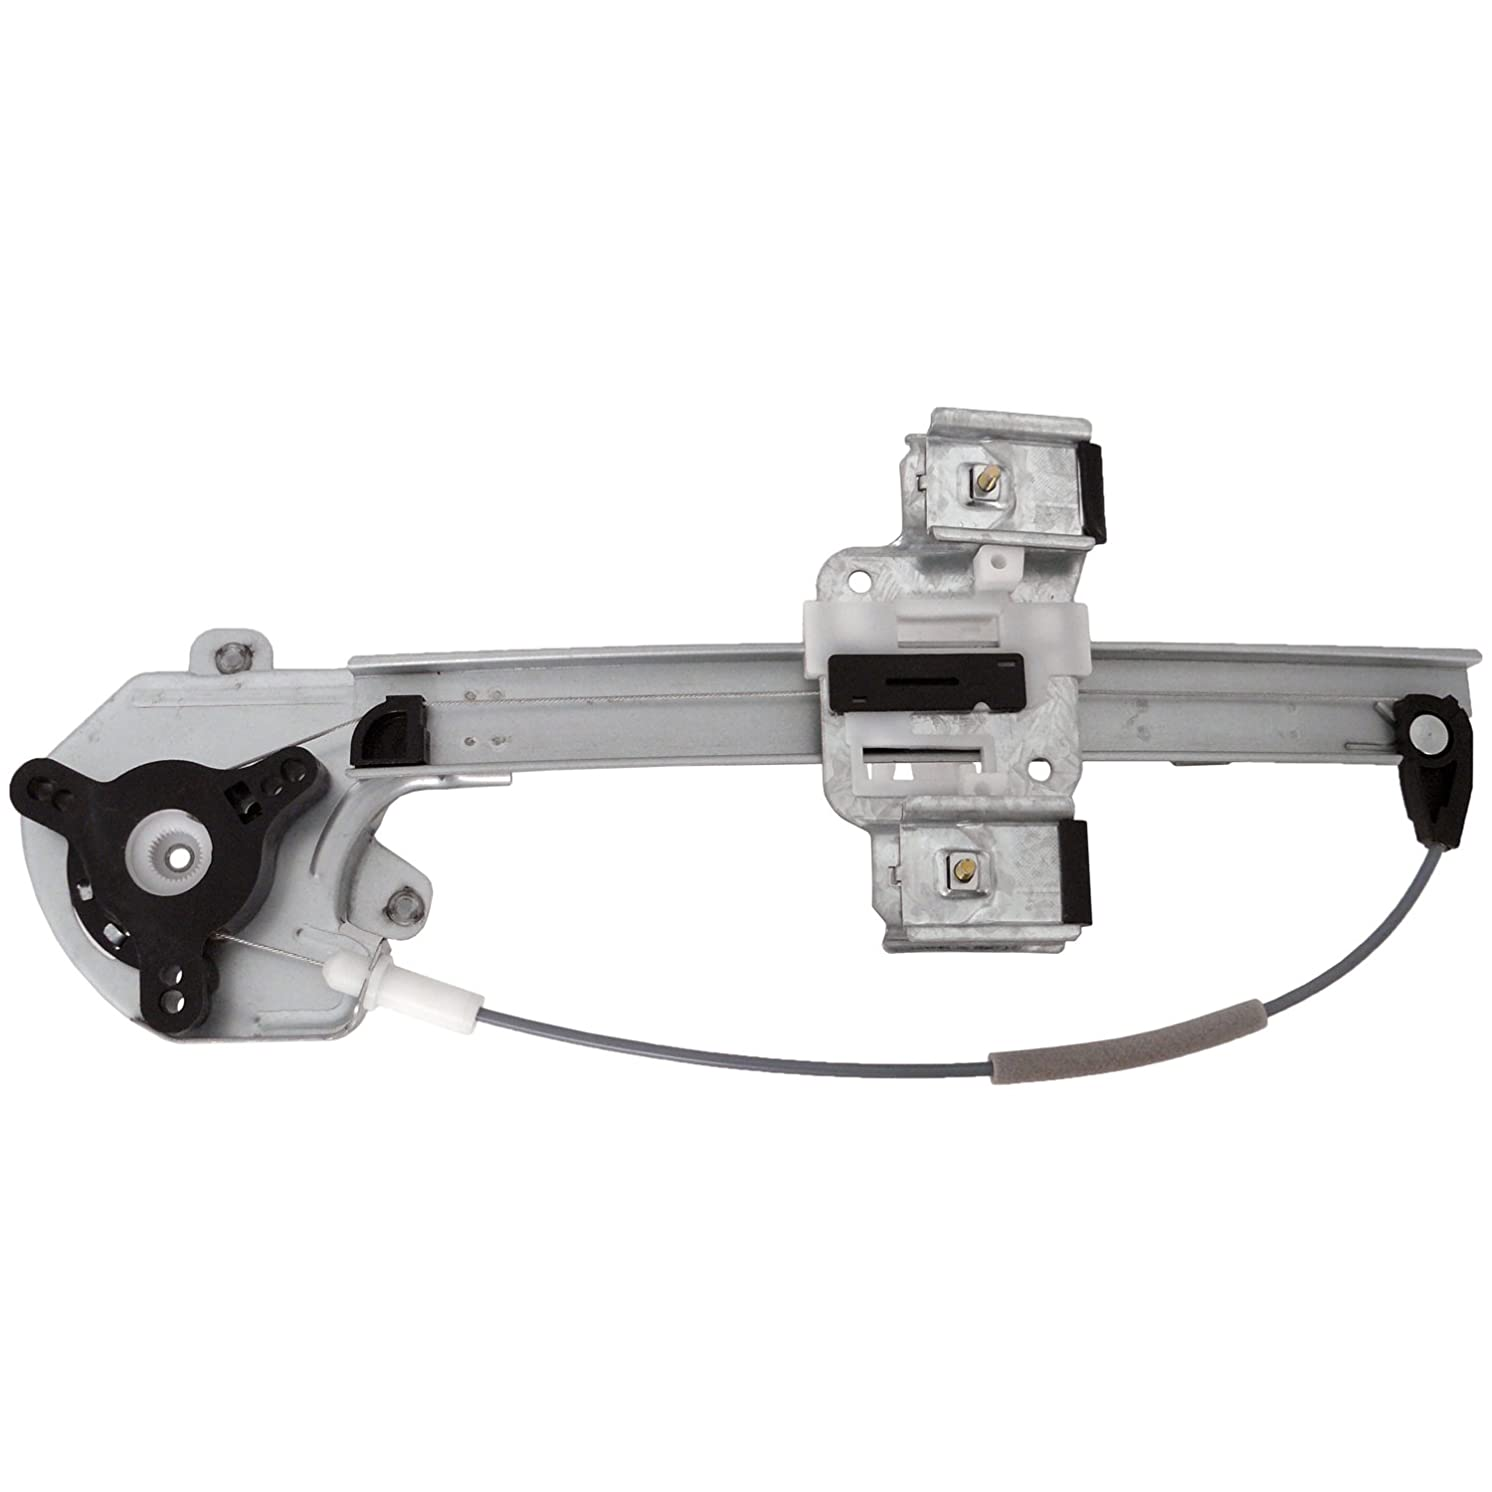 ACDelco 11R33 Professional Rear Driver Side Power Window Regulator without Motor